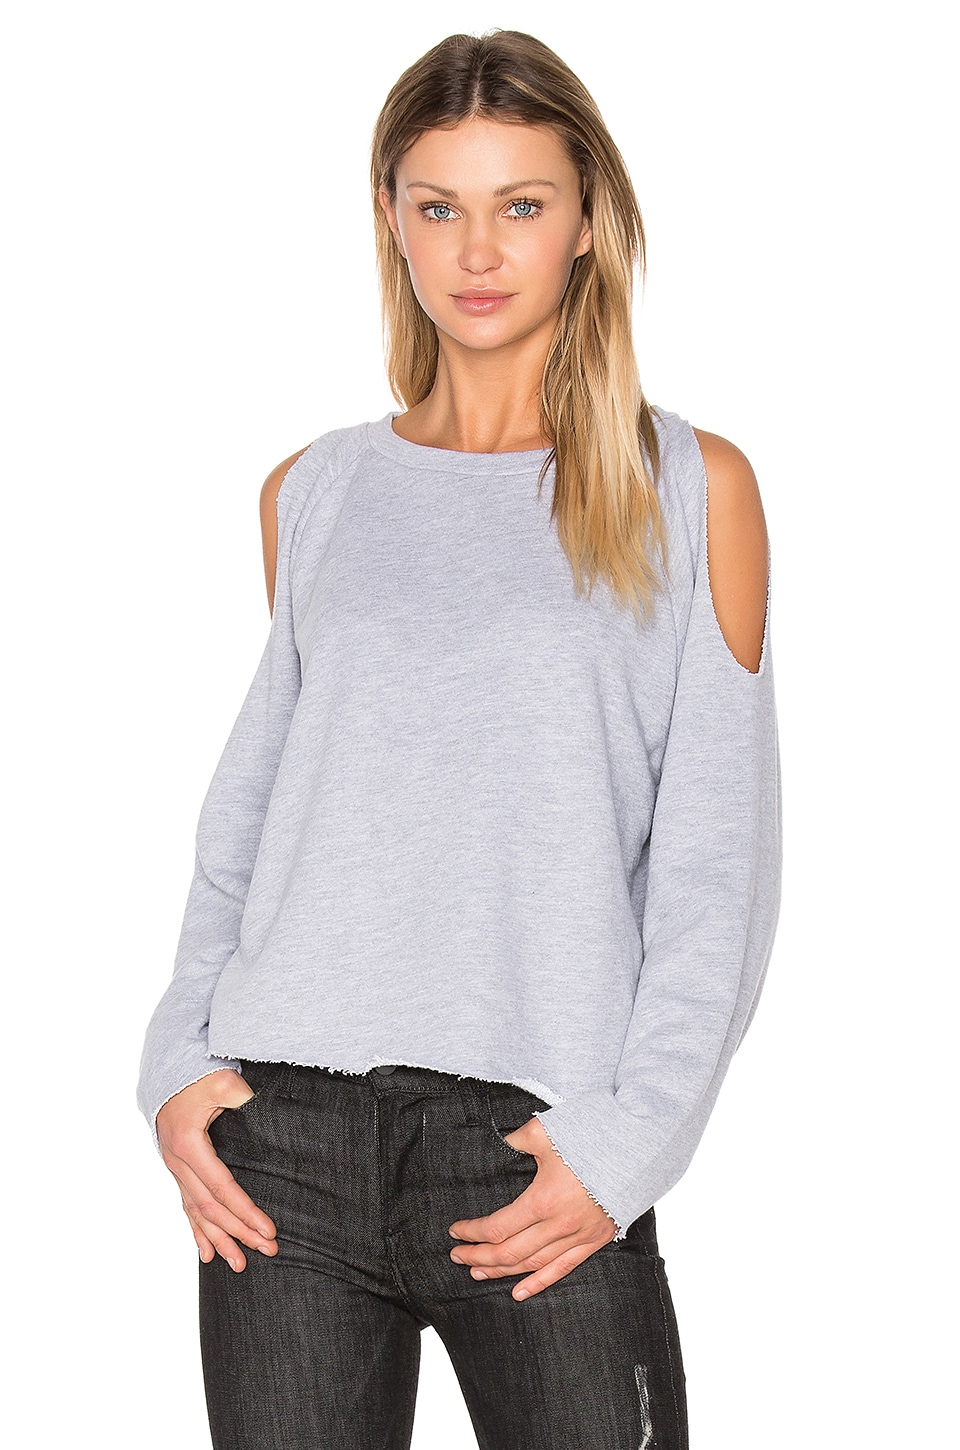 NYTT Cold Shoulder Sweatshirt in Heather Grey